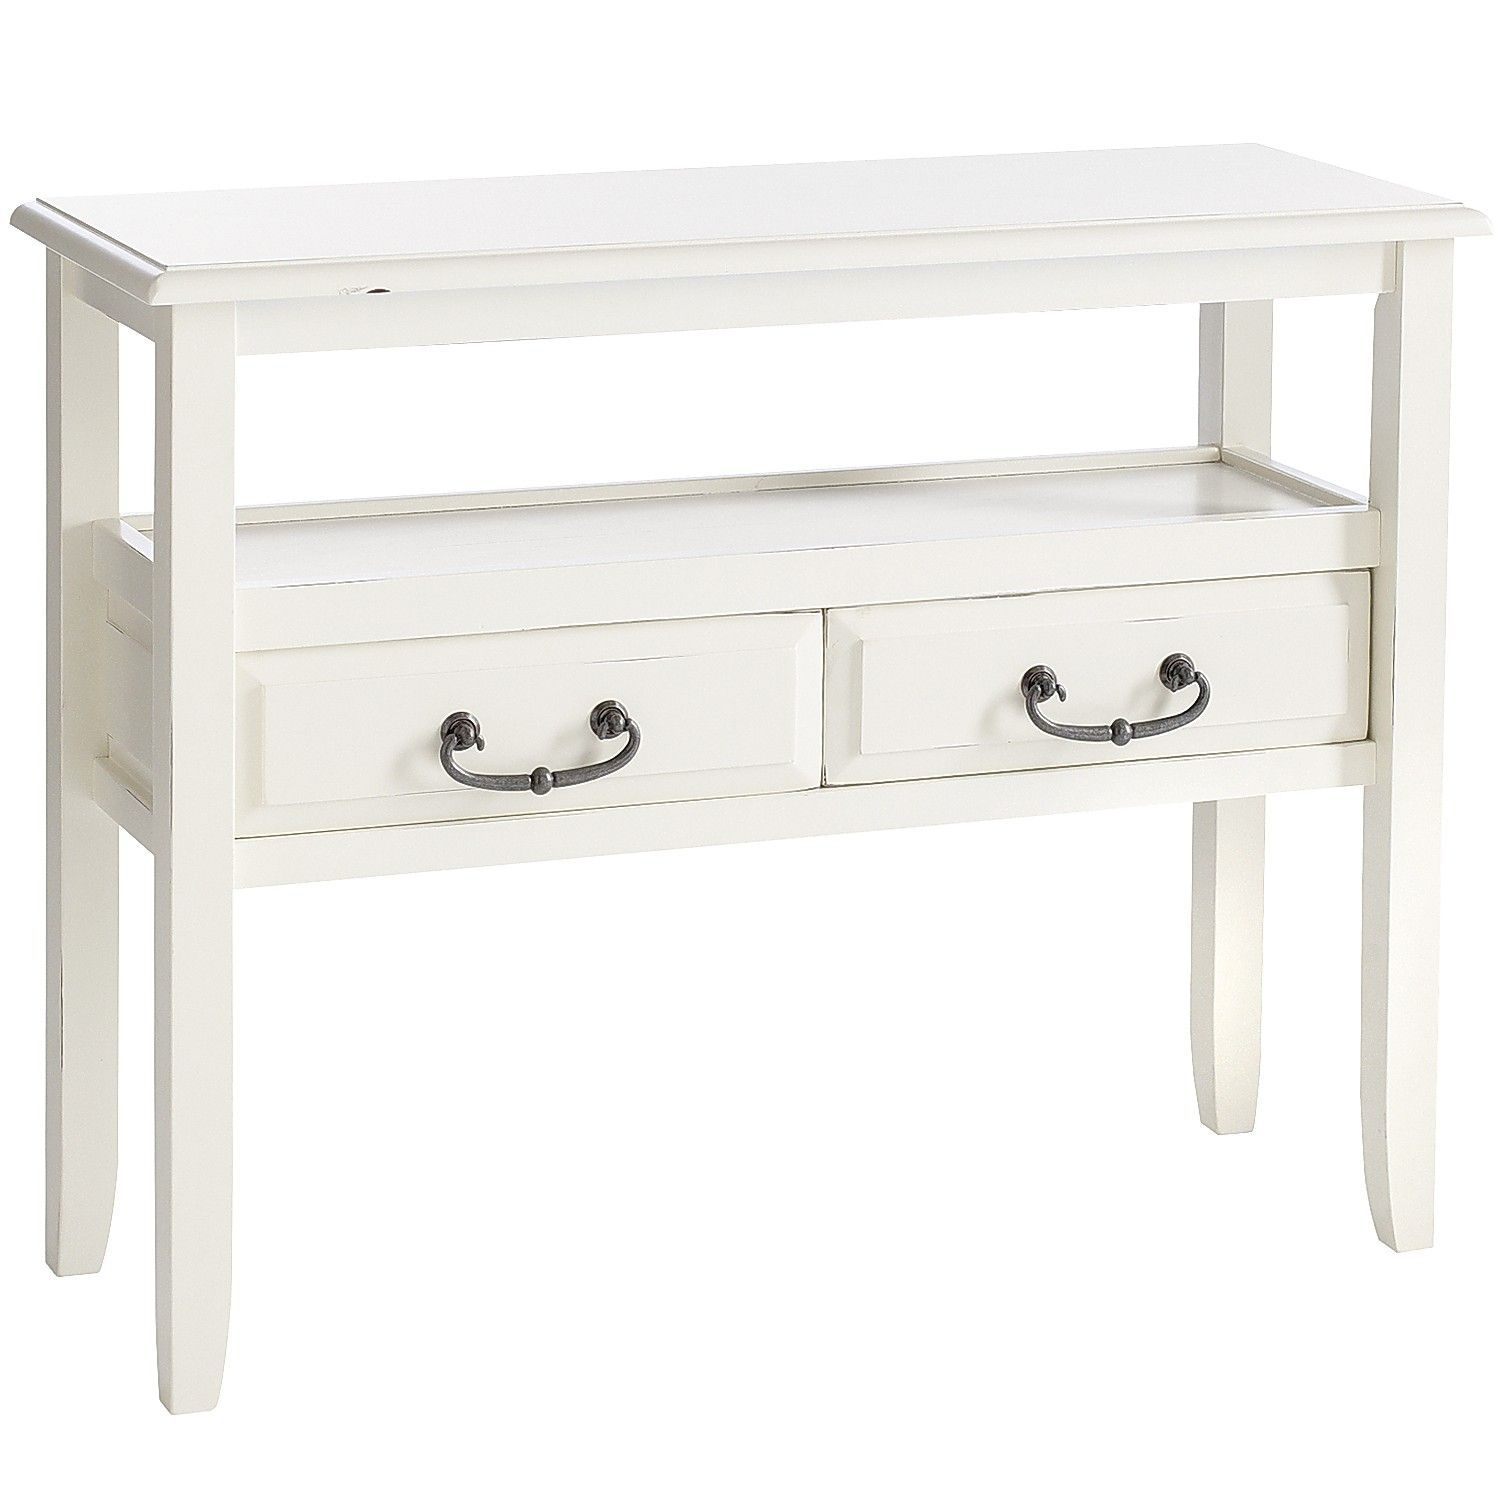 Anywhere Antique White Console Table With Pull Handles | Home Sweet Intended For Switch Console Tables (View 2 of 30)